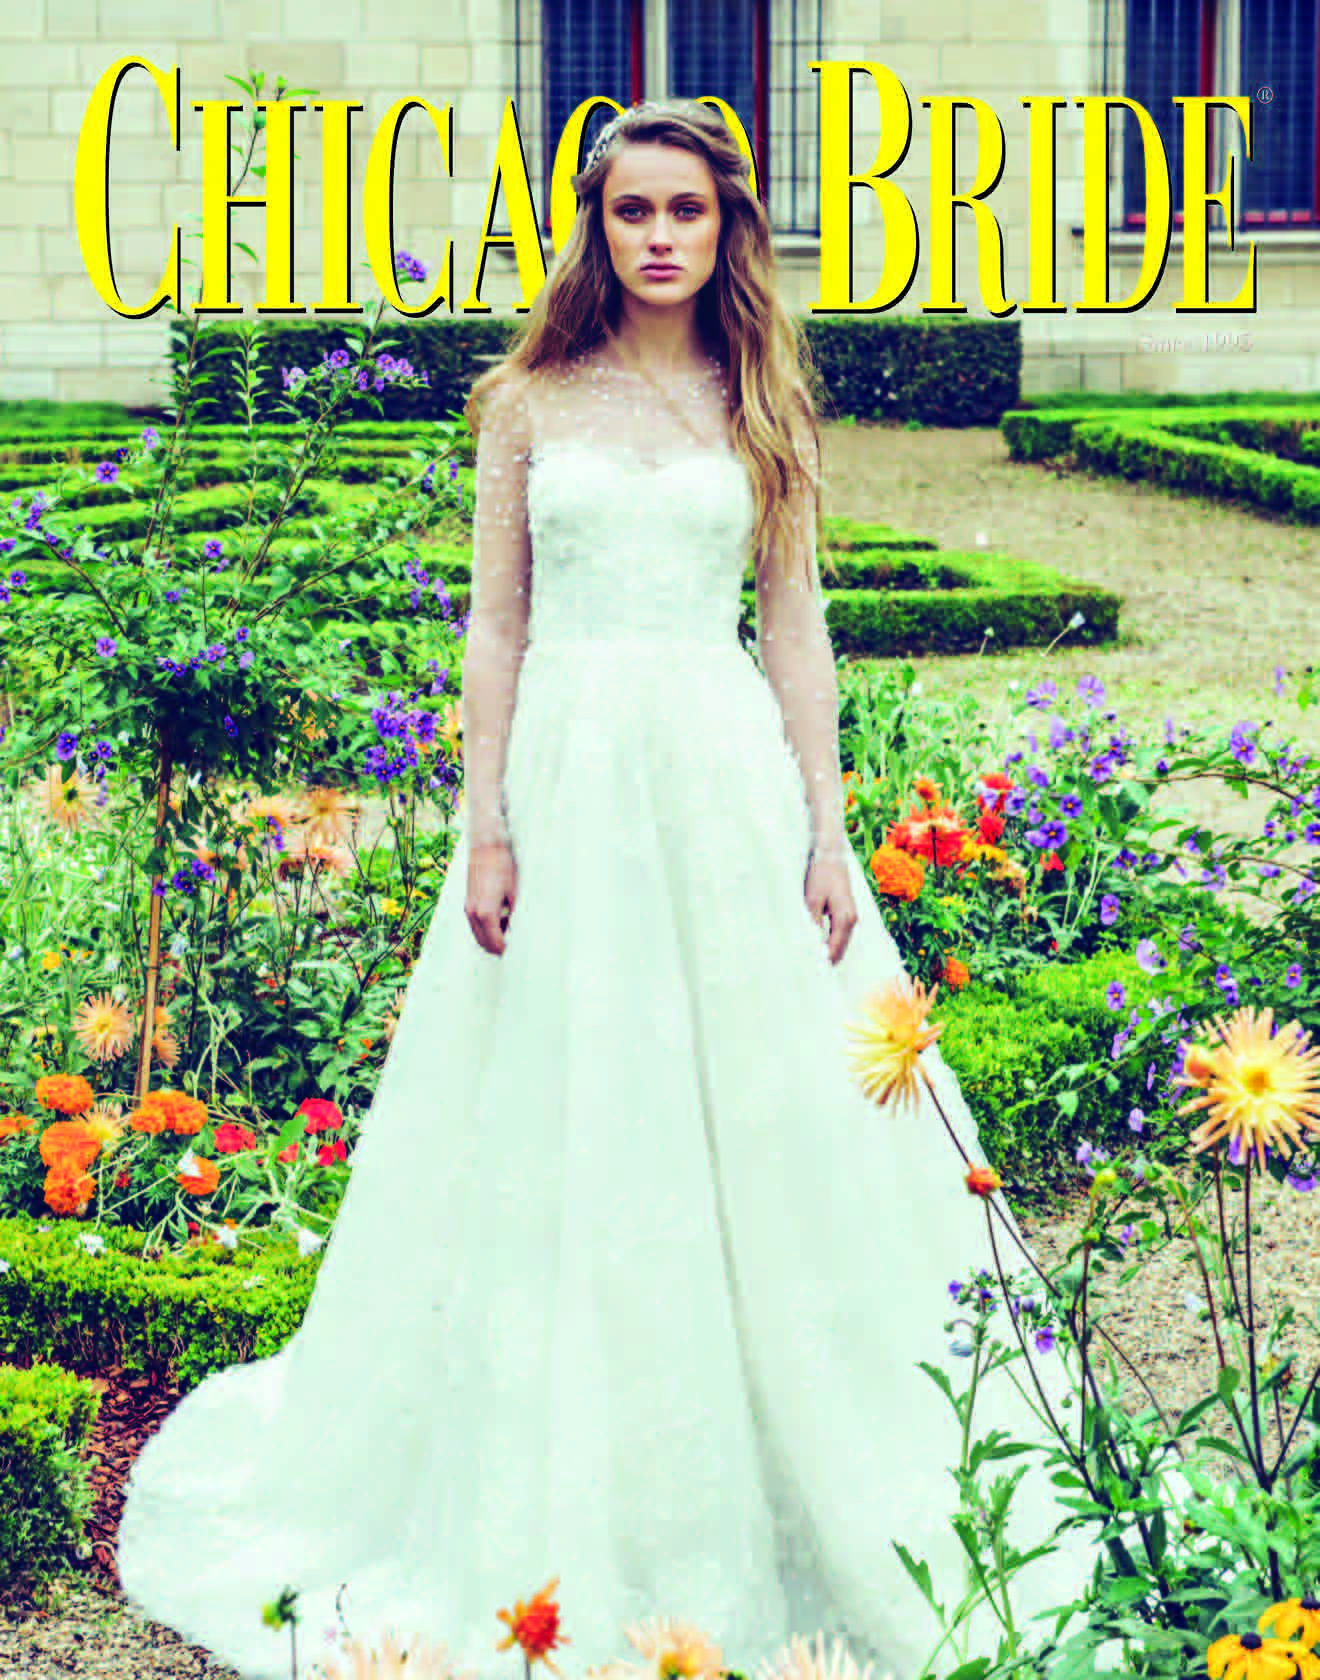 Chicago_Bride_COVER.jpg